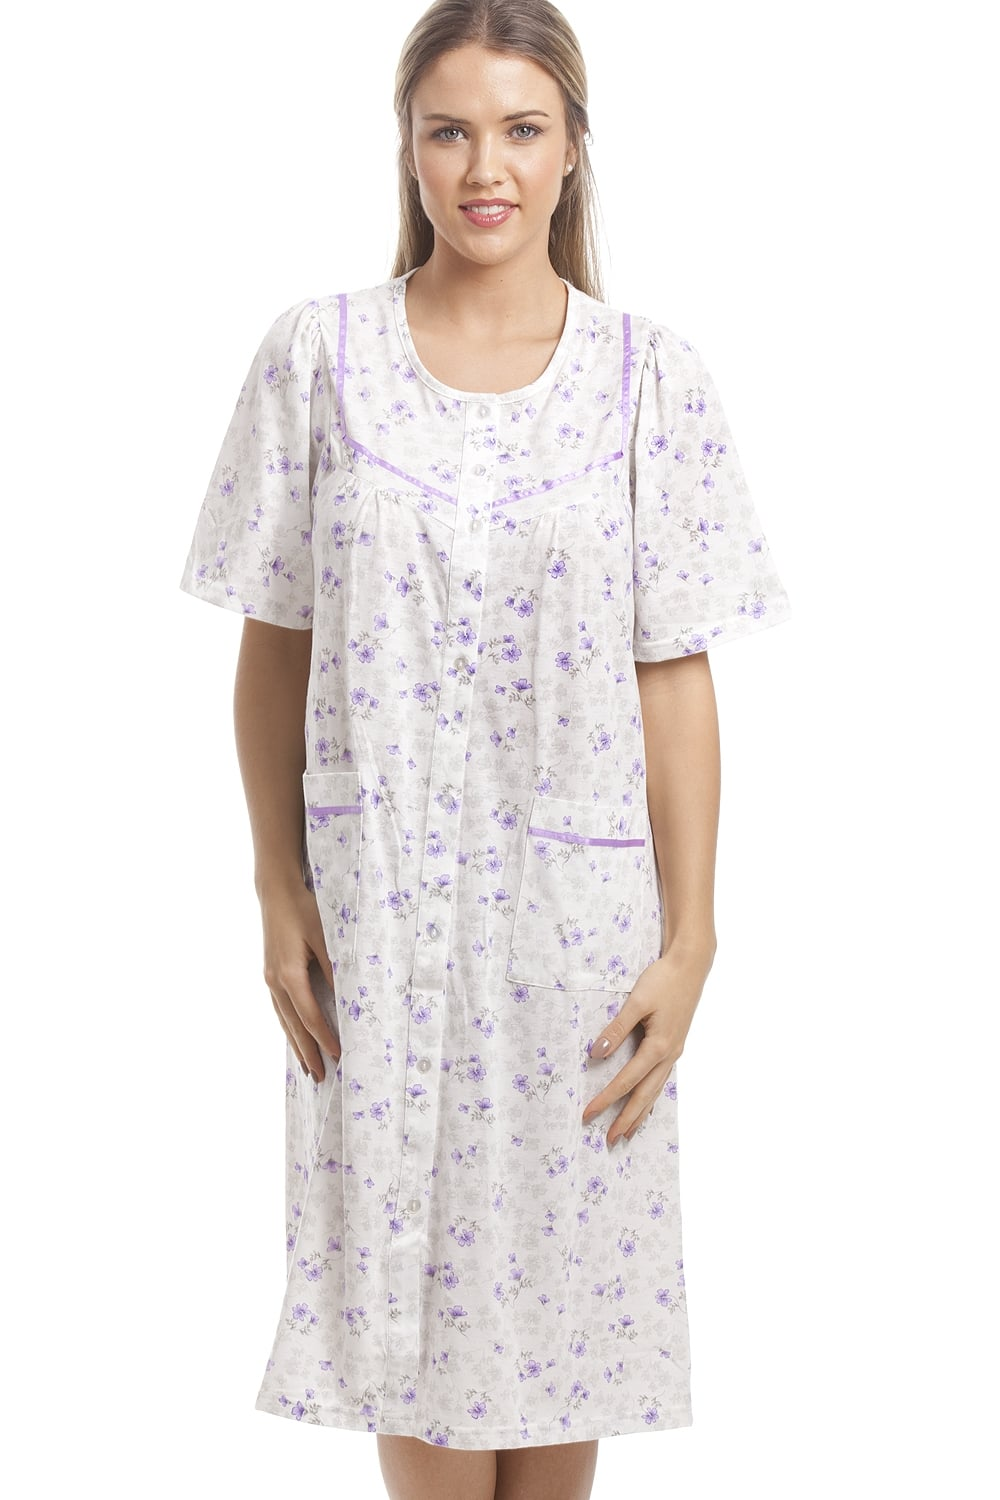 Classic Lilac Floral Print White Short Sleeve Button Up Nightdress